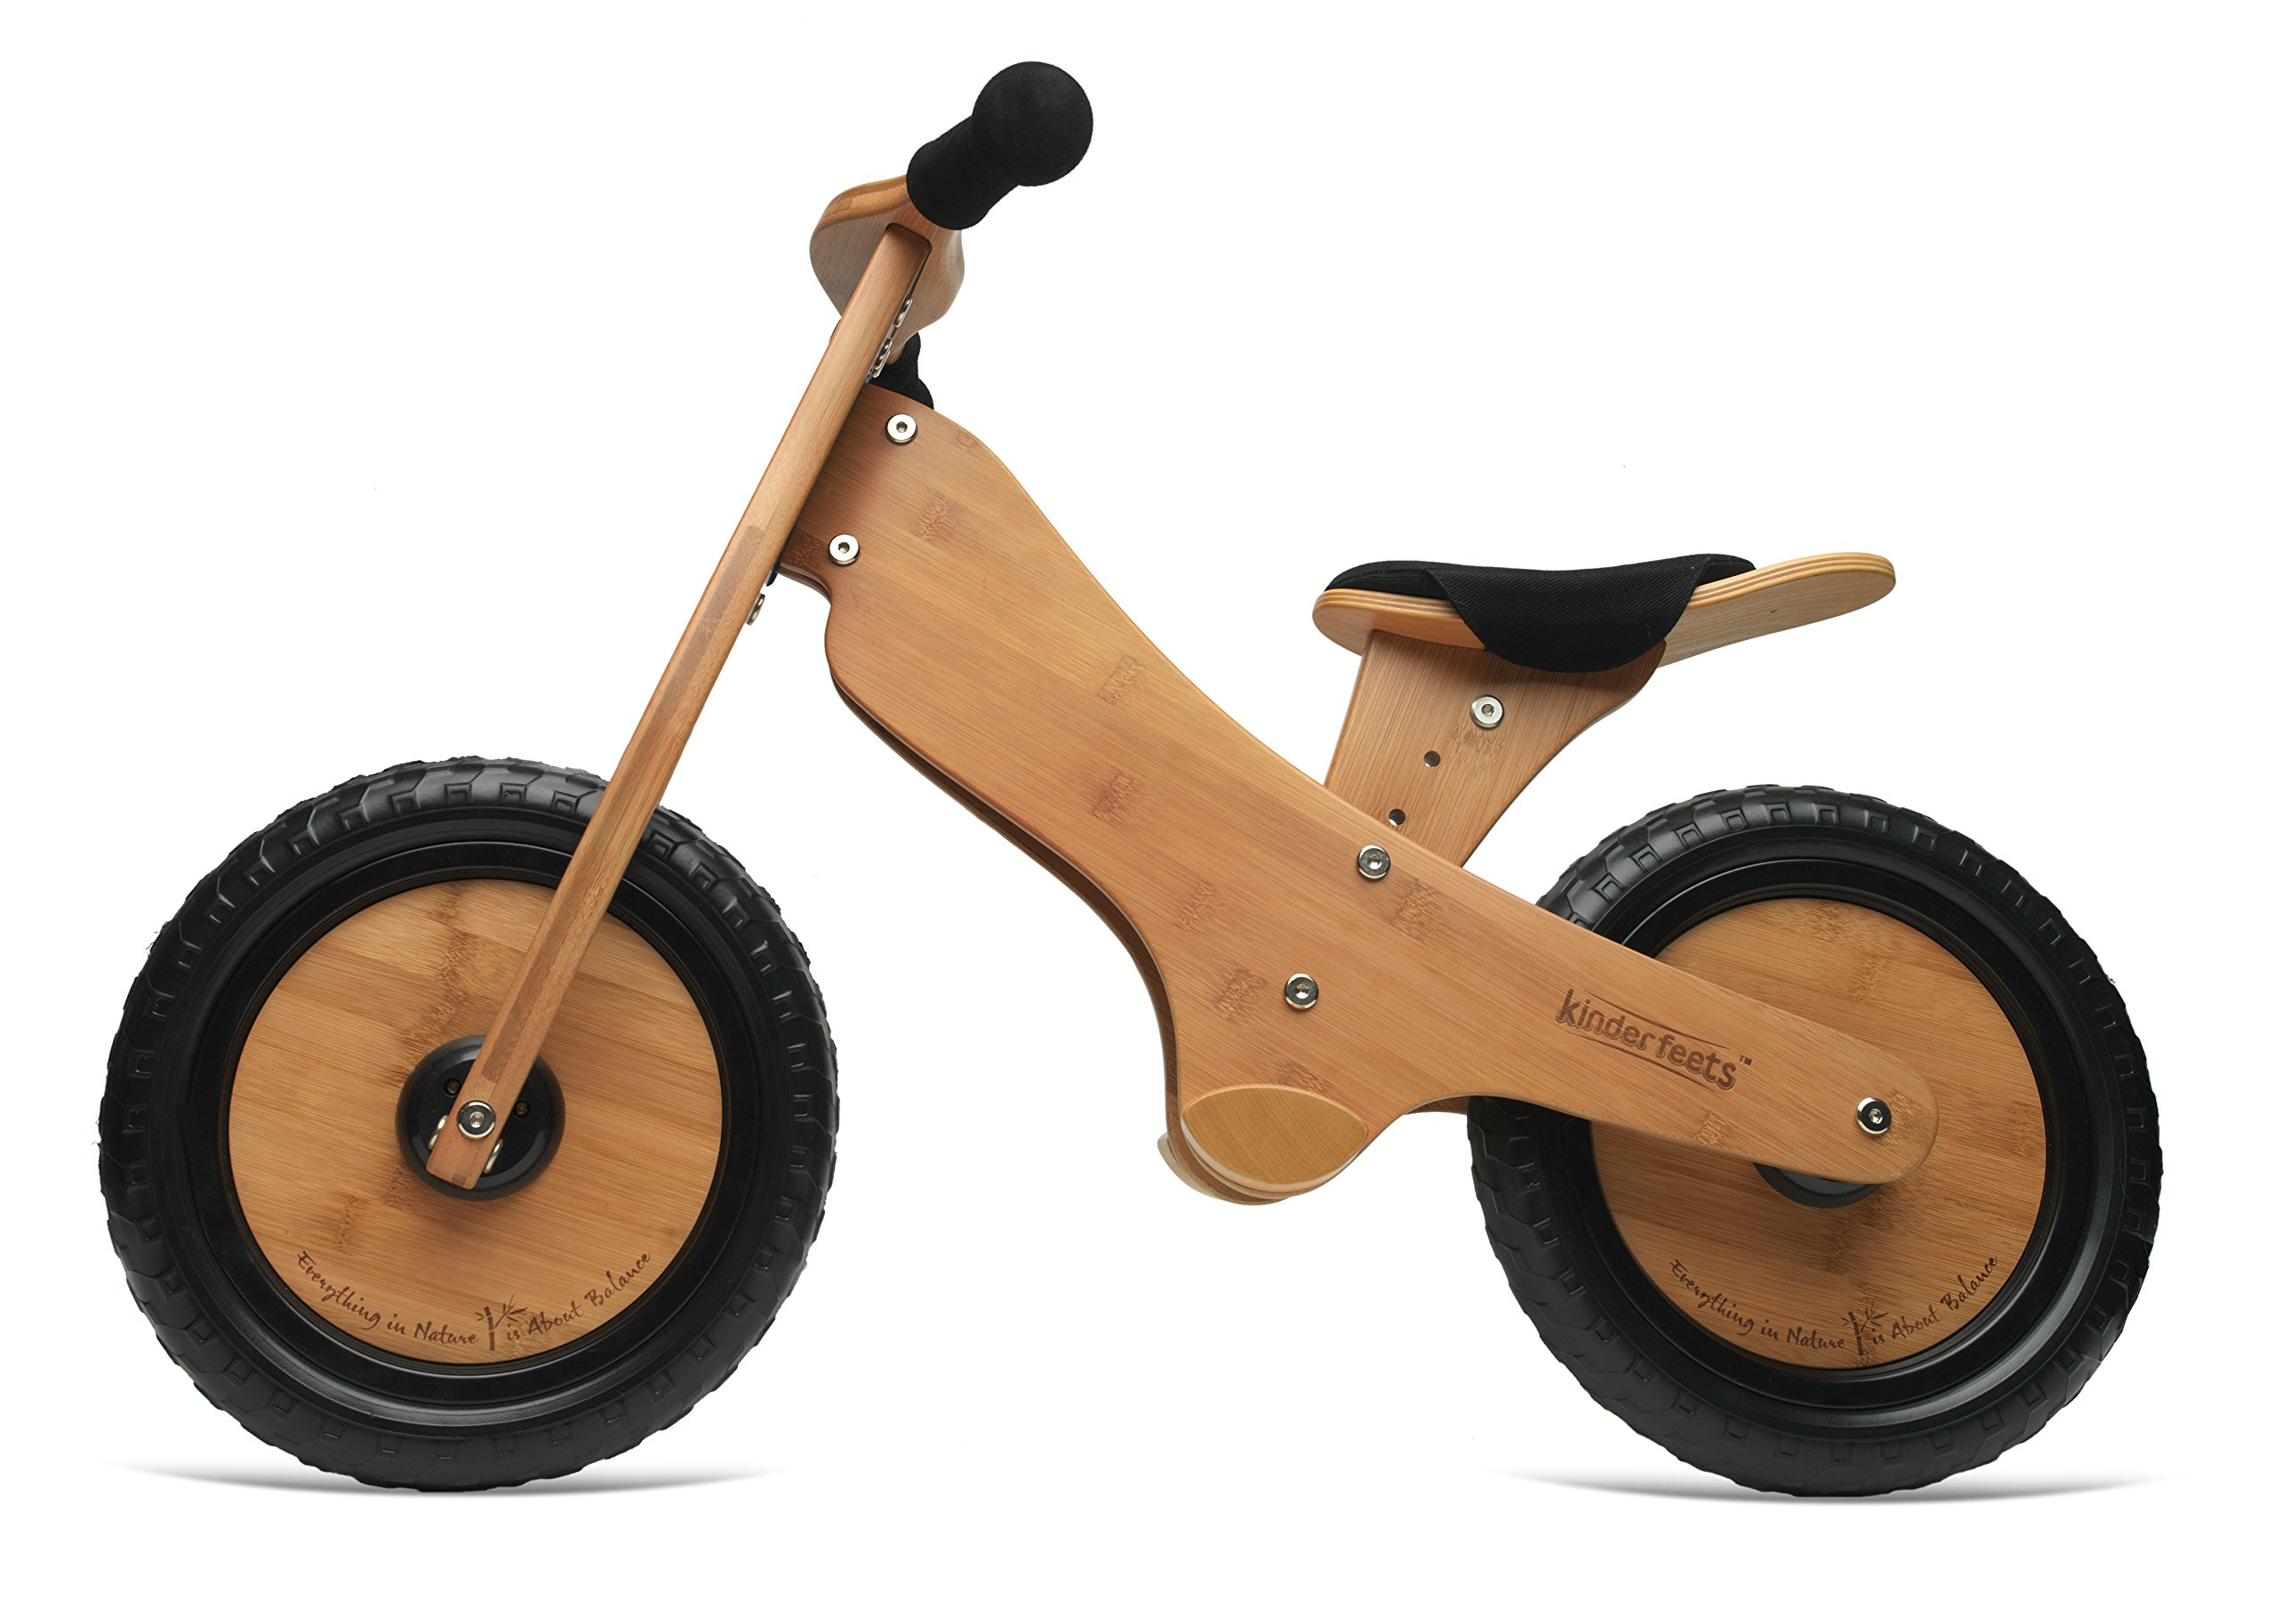 Kinderfeets Bamboo Balance Bike. Kids Training No Pedal Balance Bike by Kinderfeets